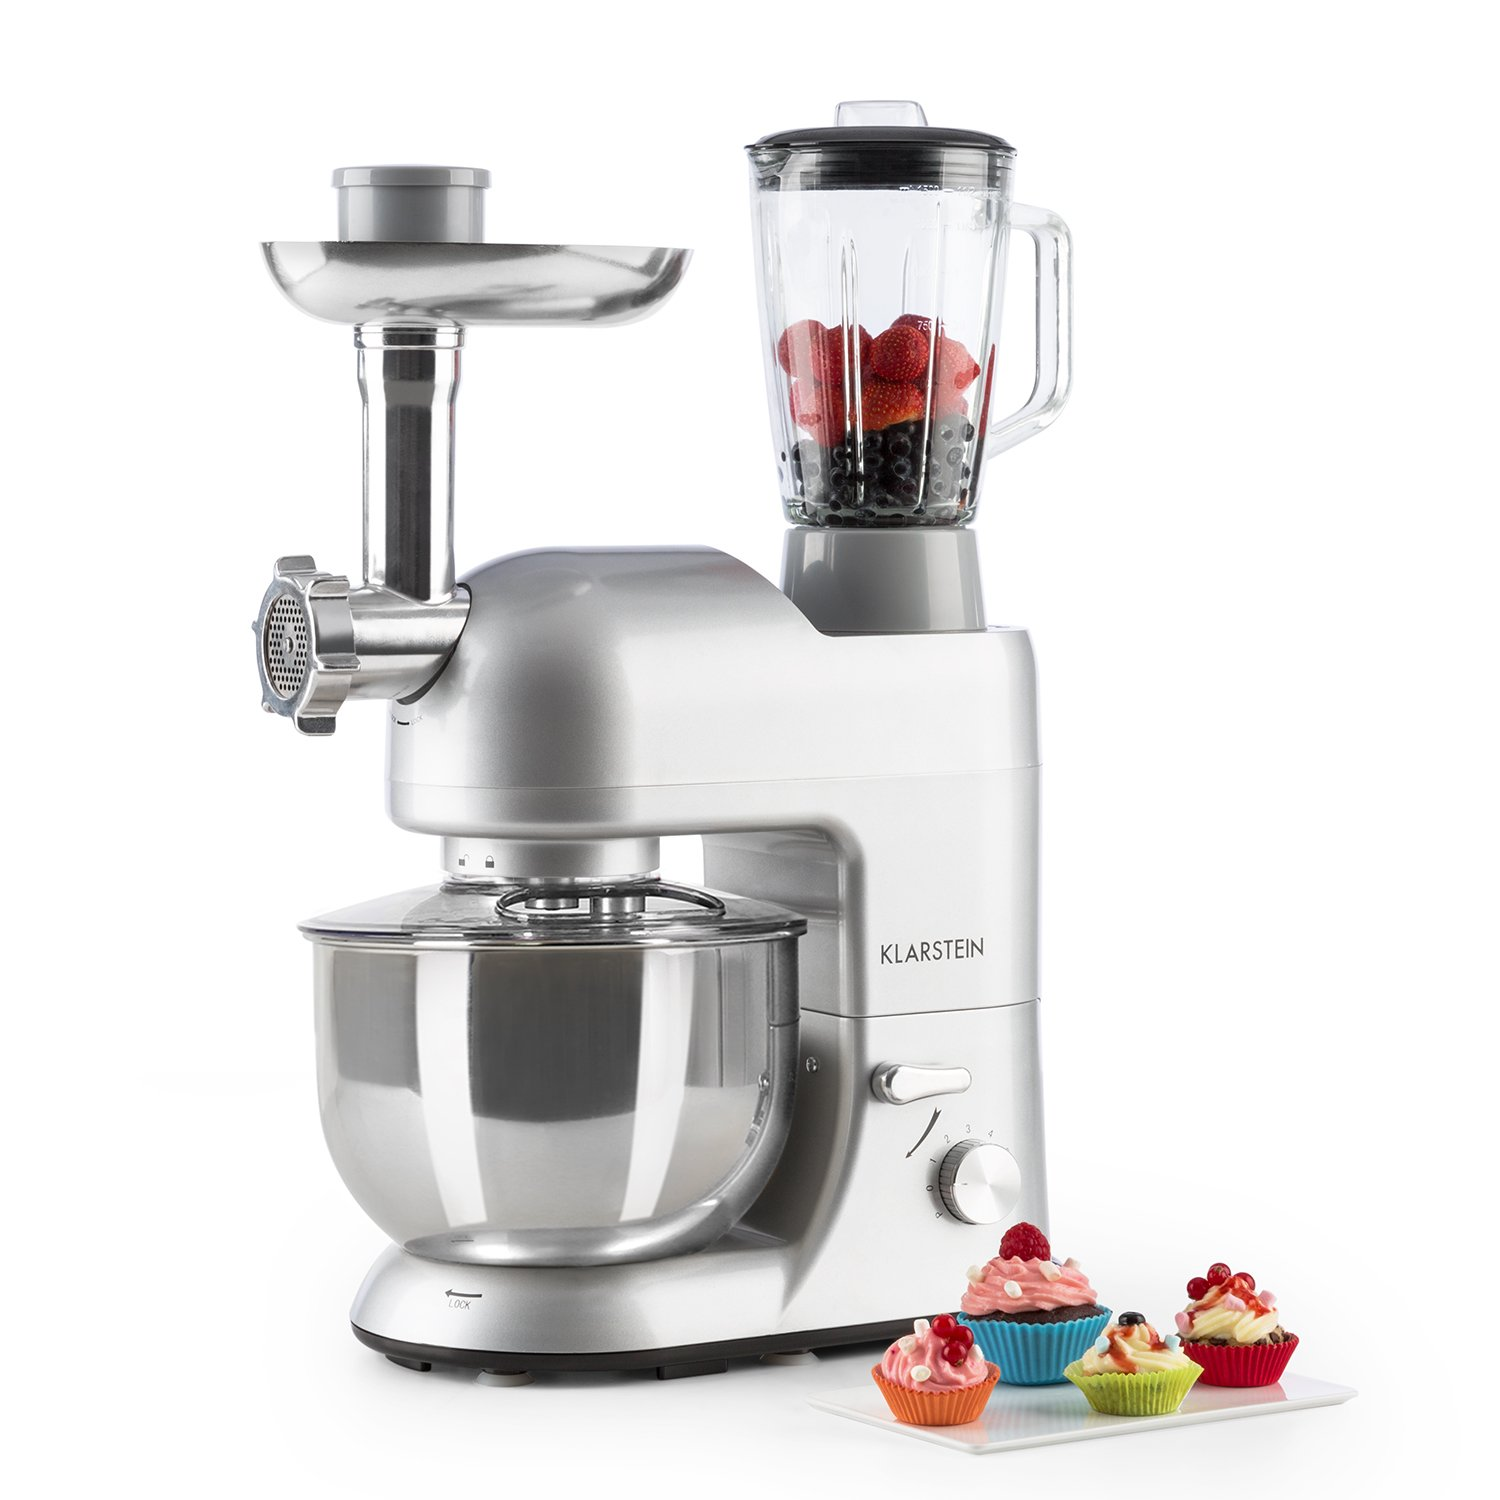 KLARSTEIN Lucia Argentea Food Processor • Stand Mixer • Mixing Machine • 800 W • 1.6 HP • 5.3 qt. Bowl • 1.3 qt. Mixing Glass • With Meat Mincer and Mixer Attachements • Adjustable Speed • Silver